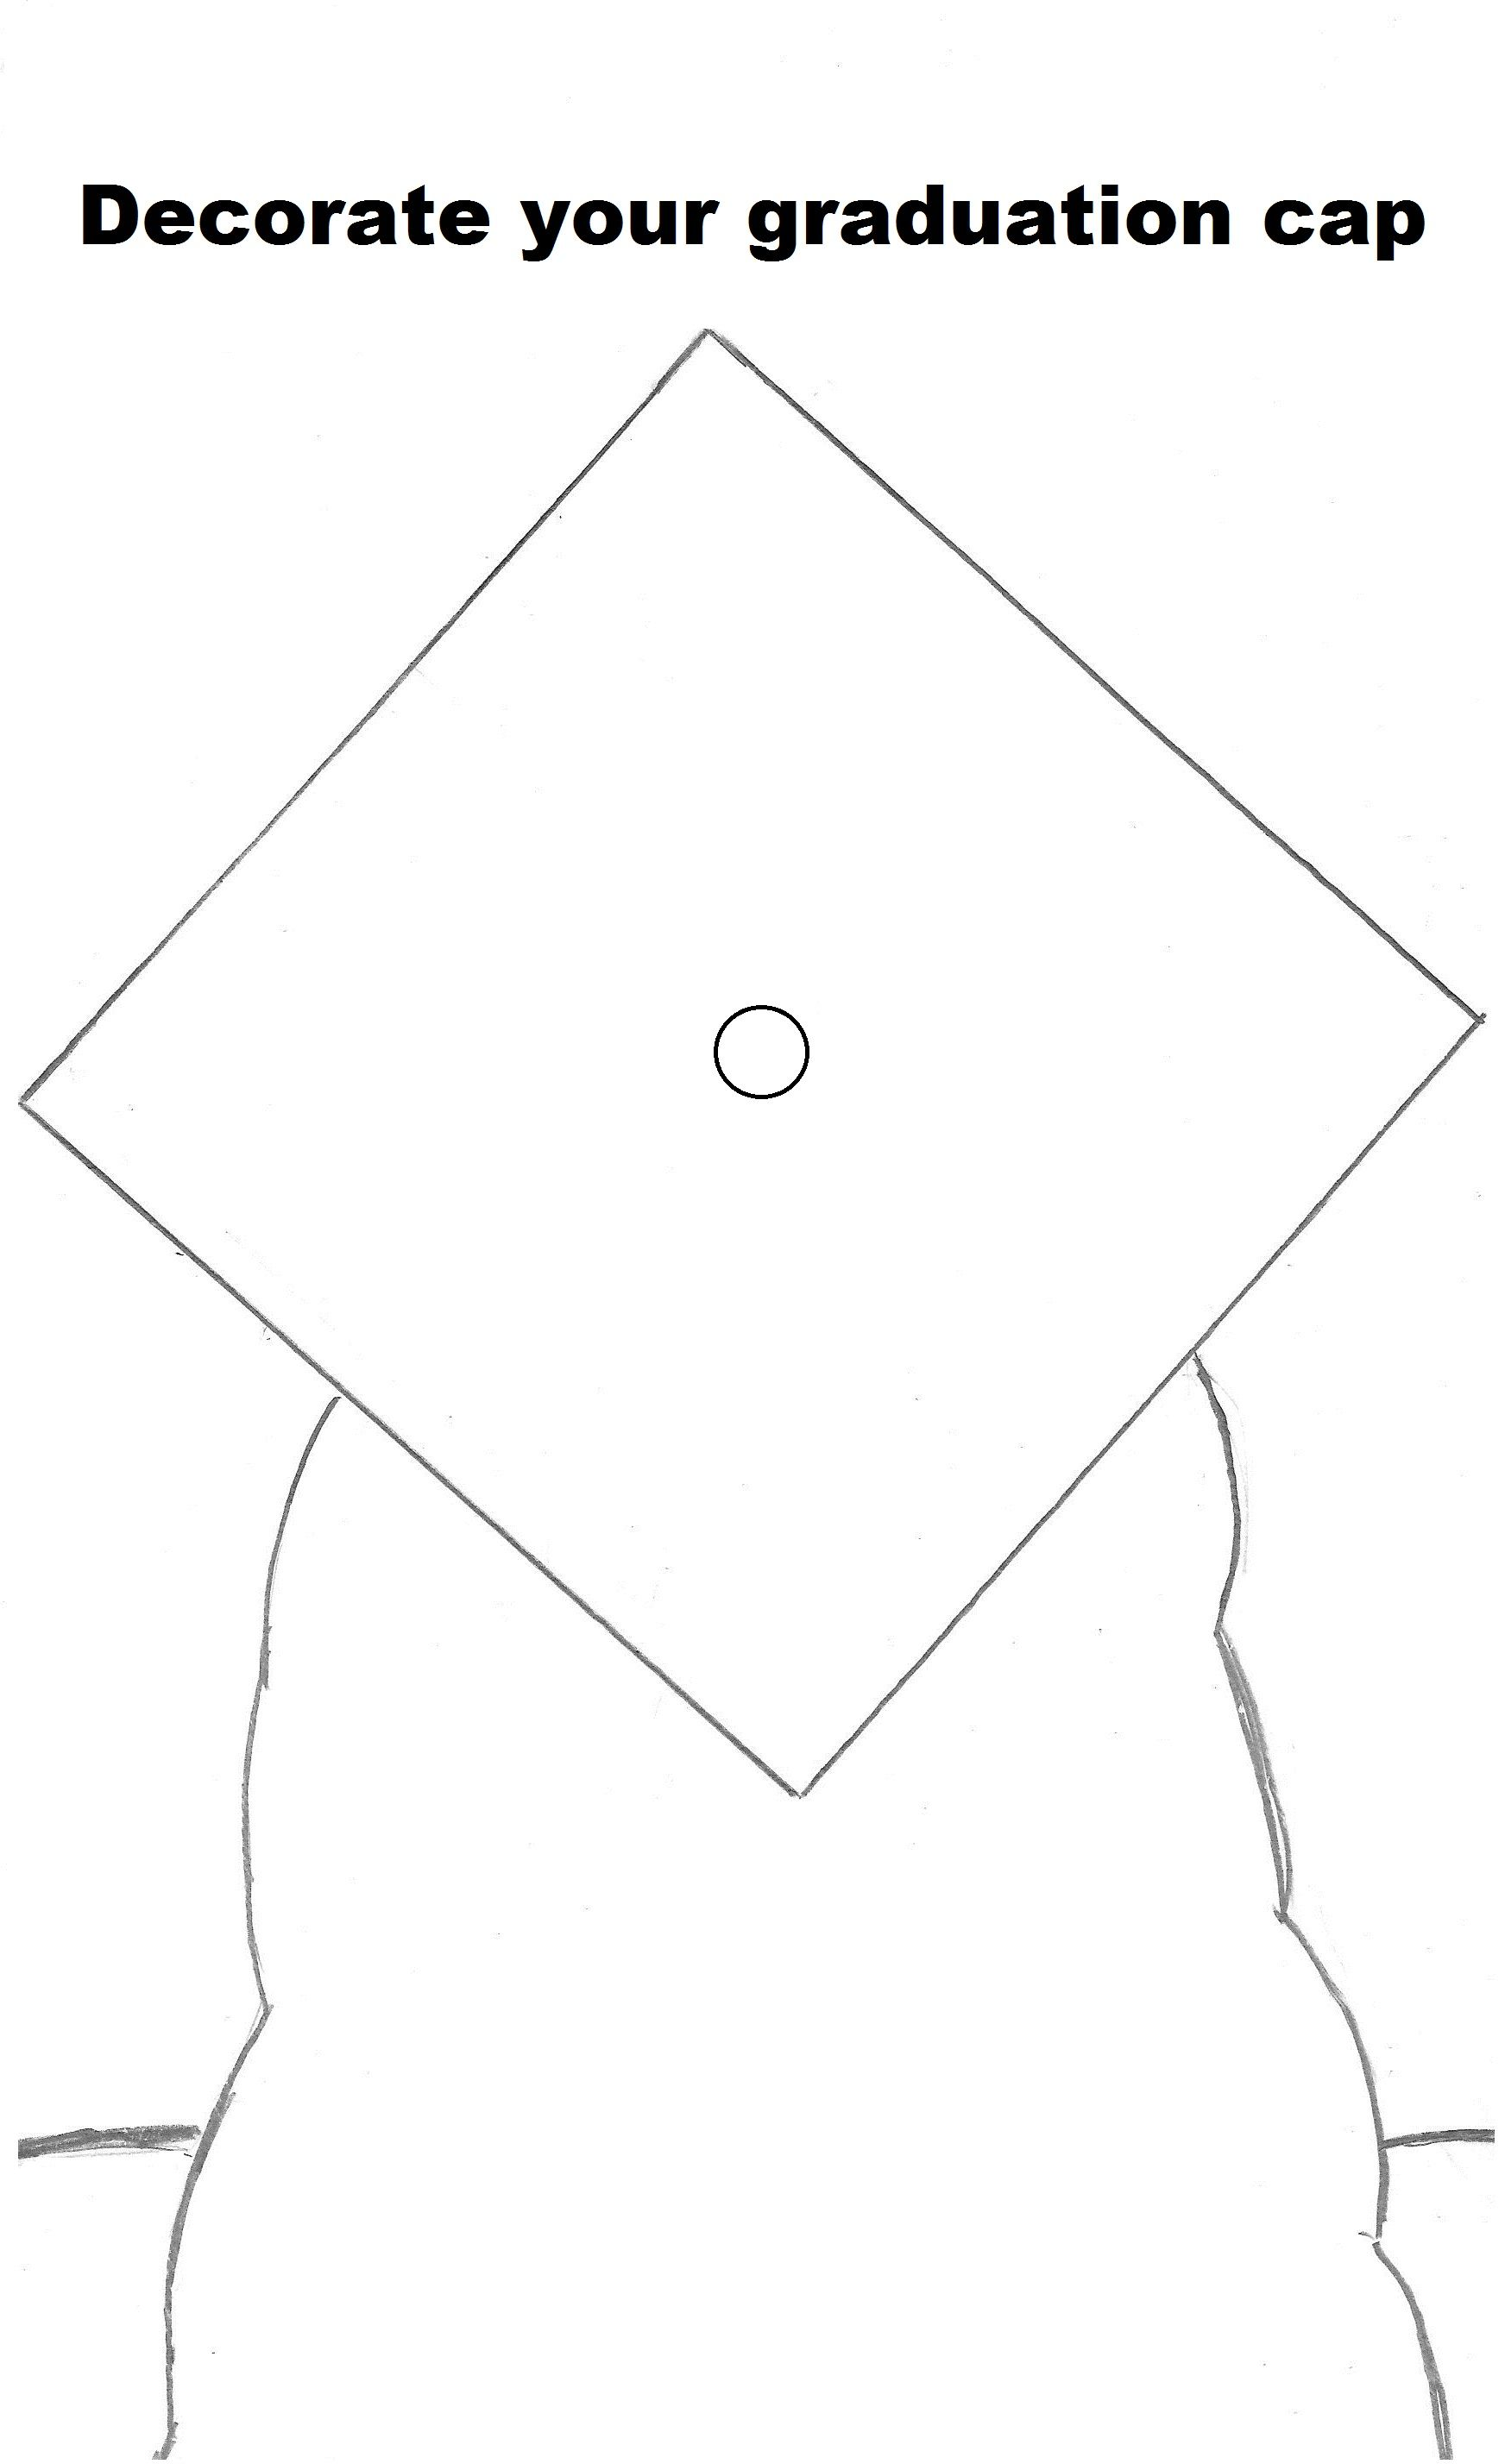 Decorate Your Graduation Cap Coloring Page